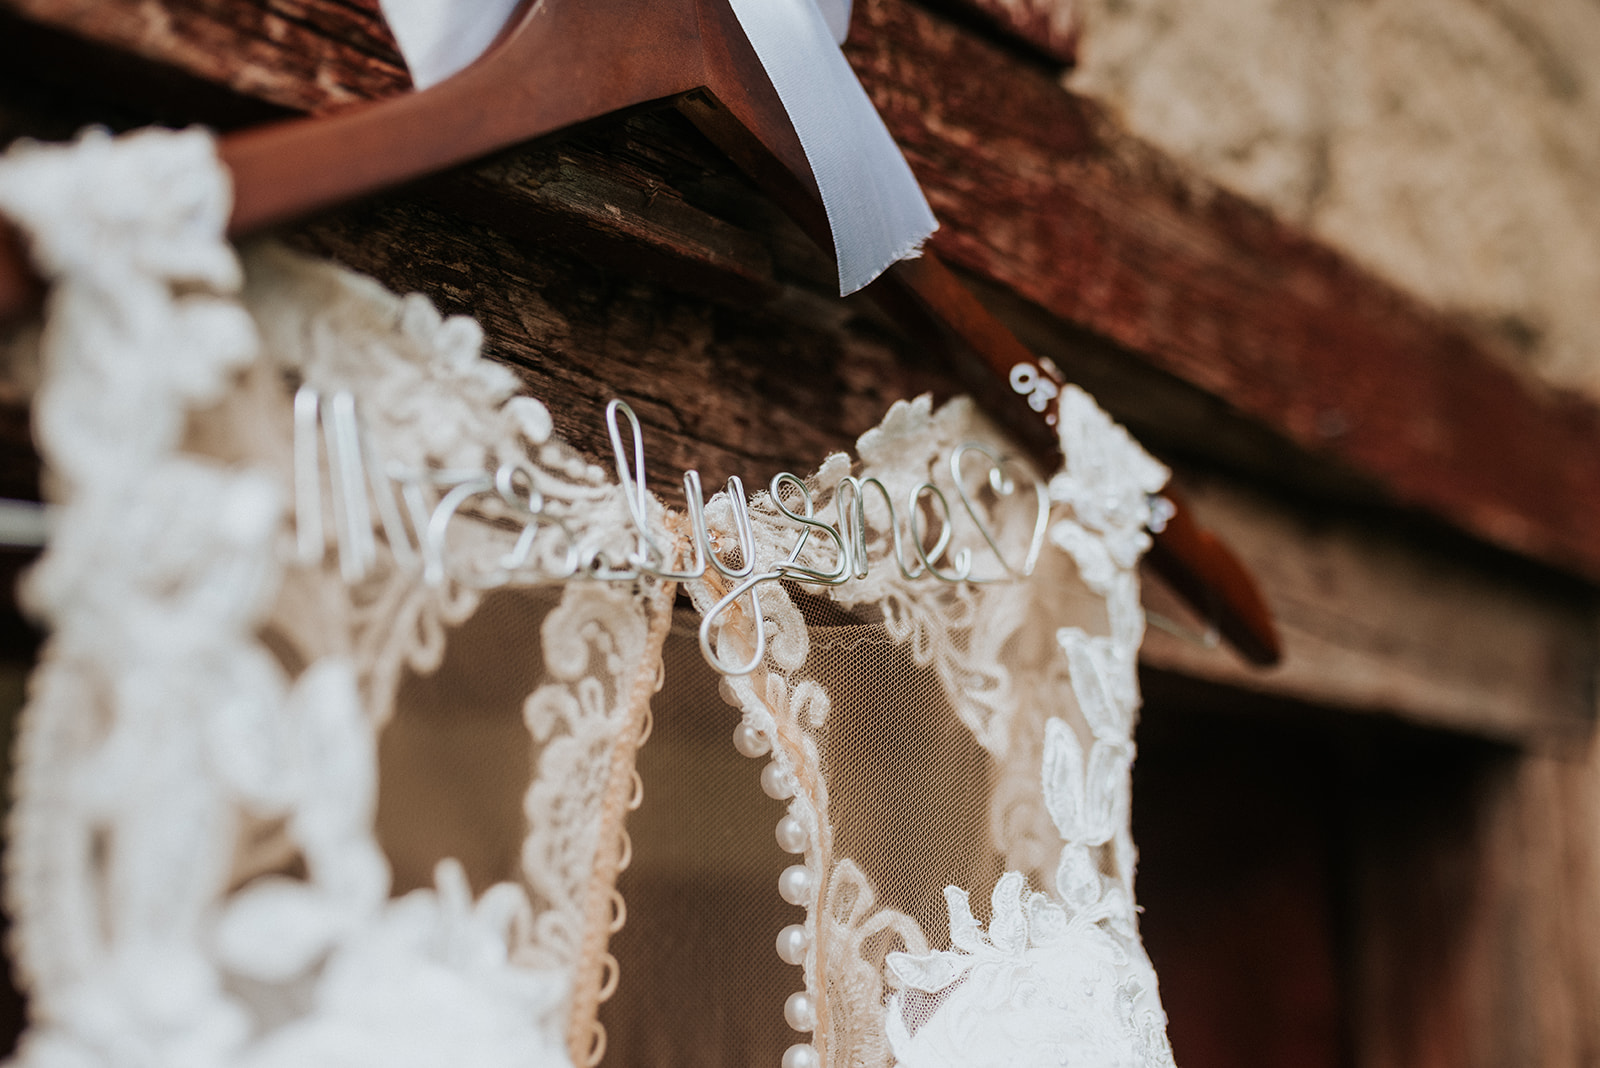 overthevineswisconsinwedding_0182.jpg